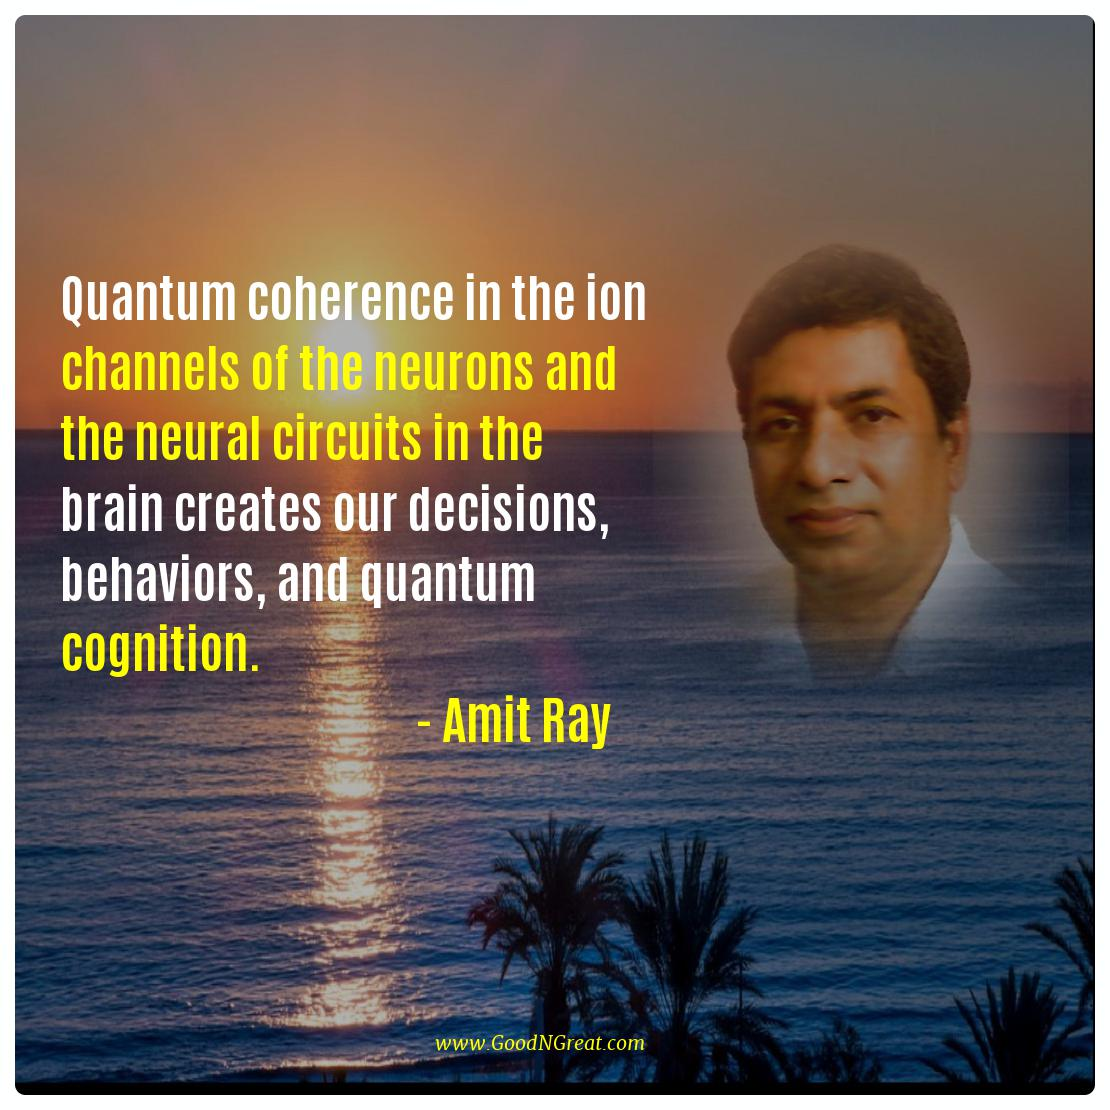 Quantum coherence in the ion channels of the neurons and the neural circuits in the brain creates our decisions, behaviors, and quantum cognition. -- Amit Ray